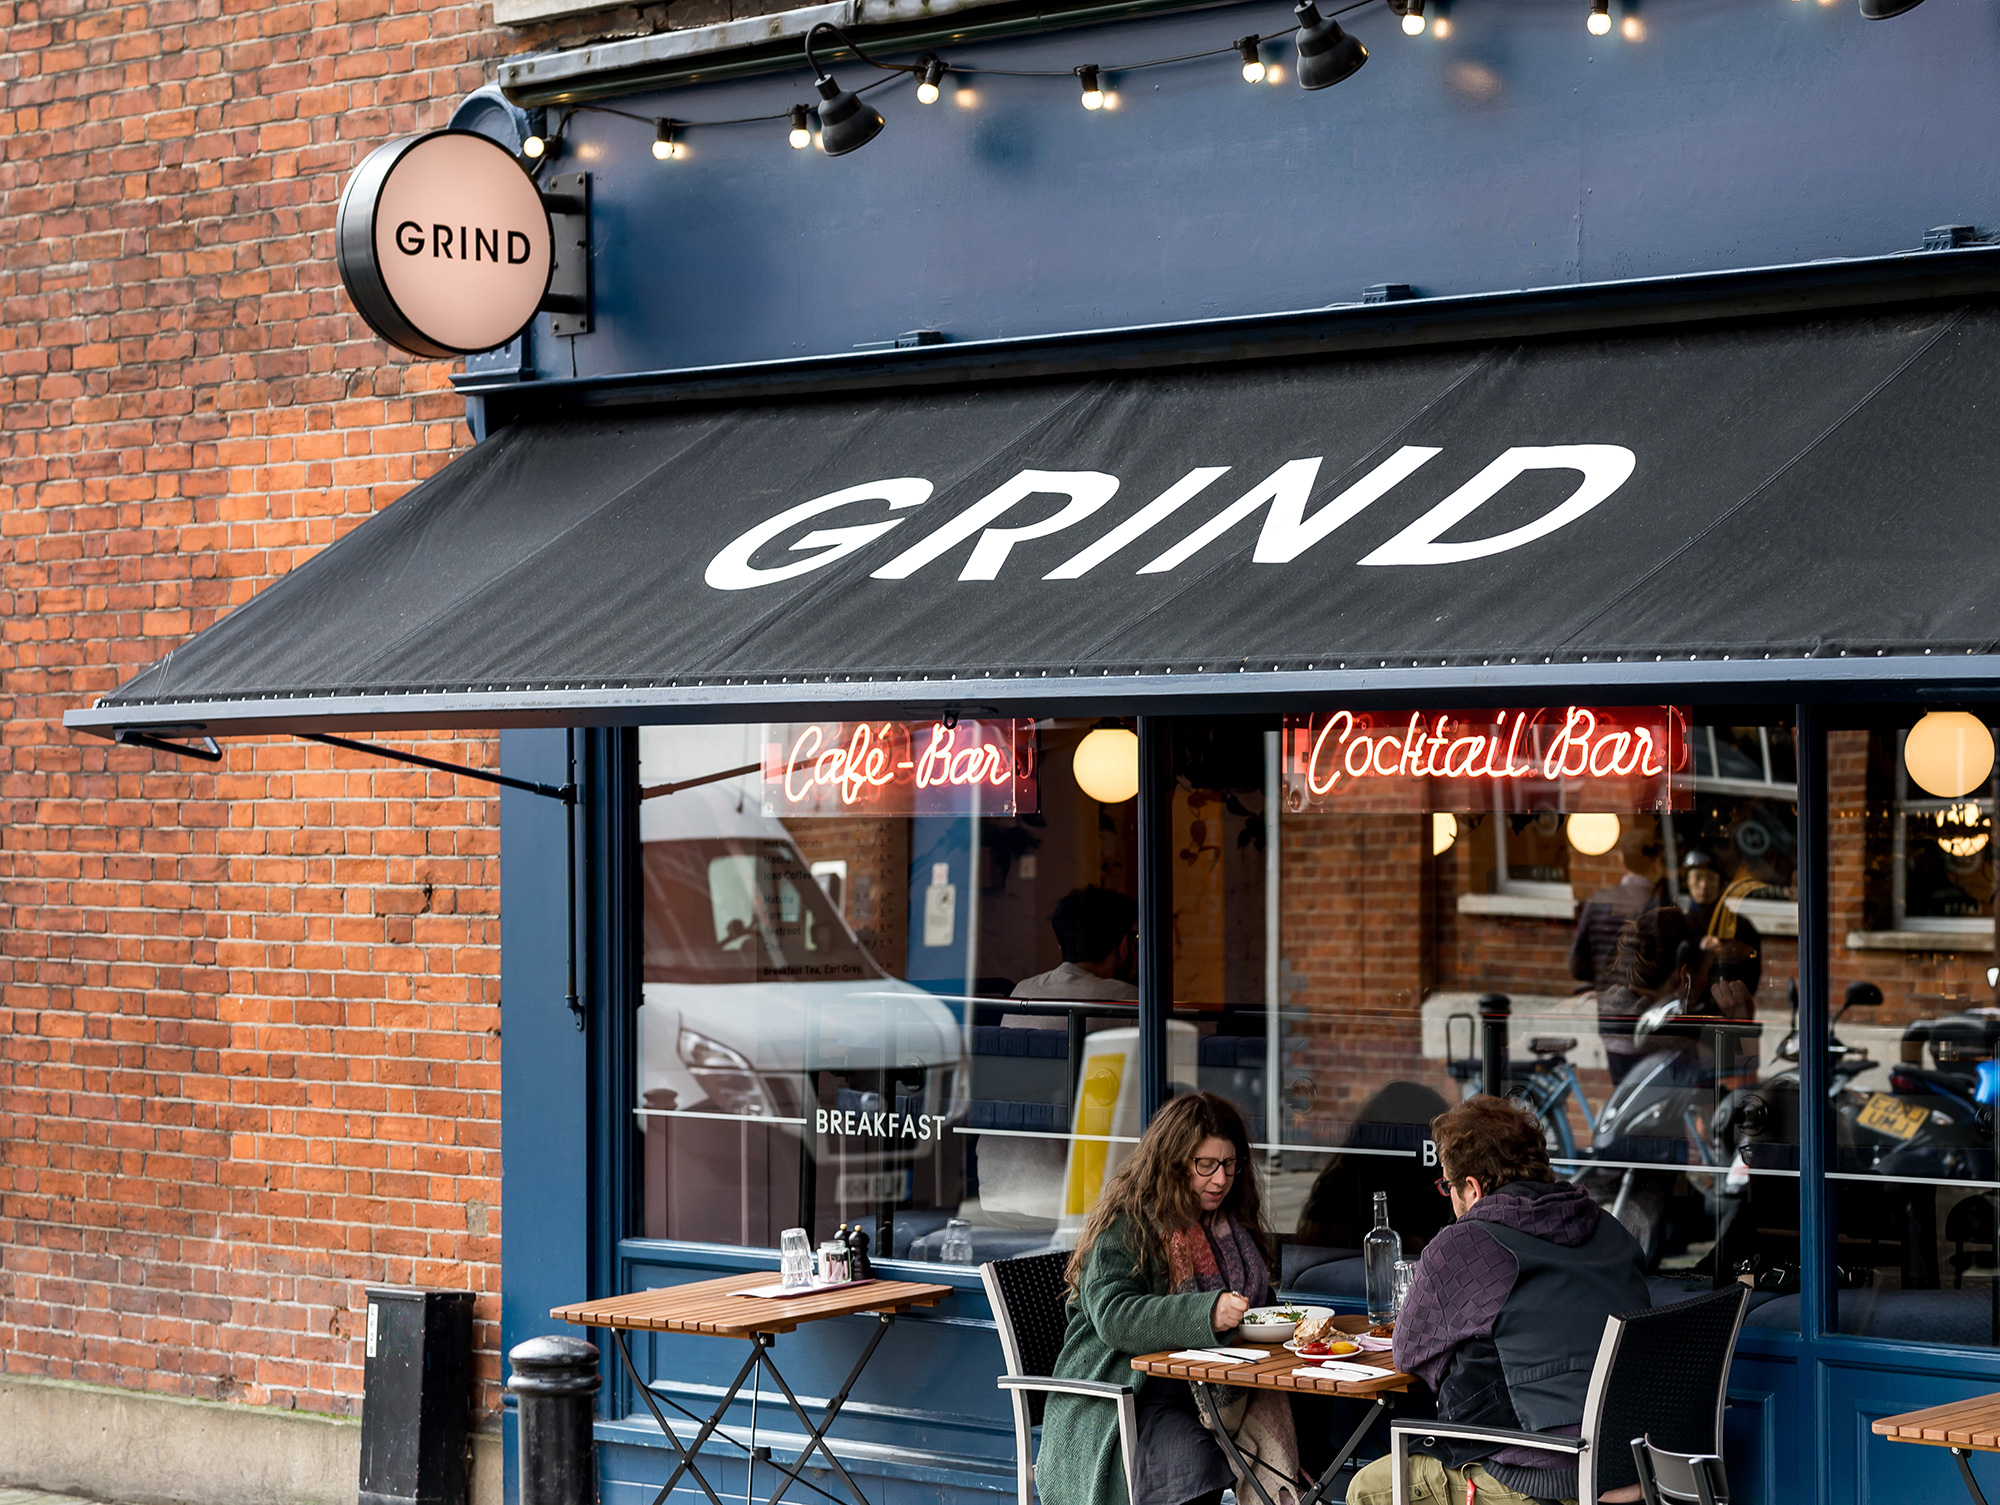 Exmouth Market Grind, 8-10 Exmouth Market, London EC1R 4QA